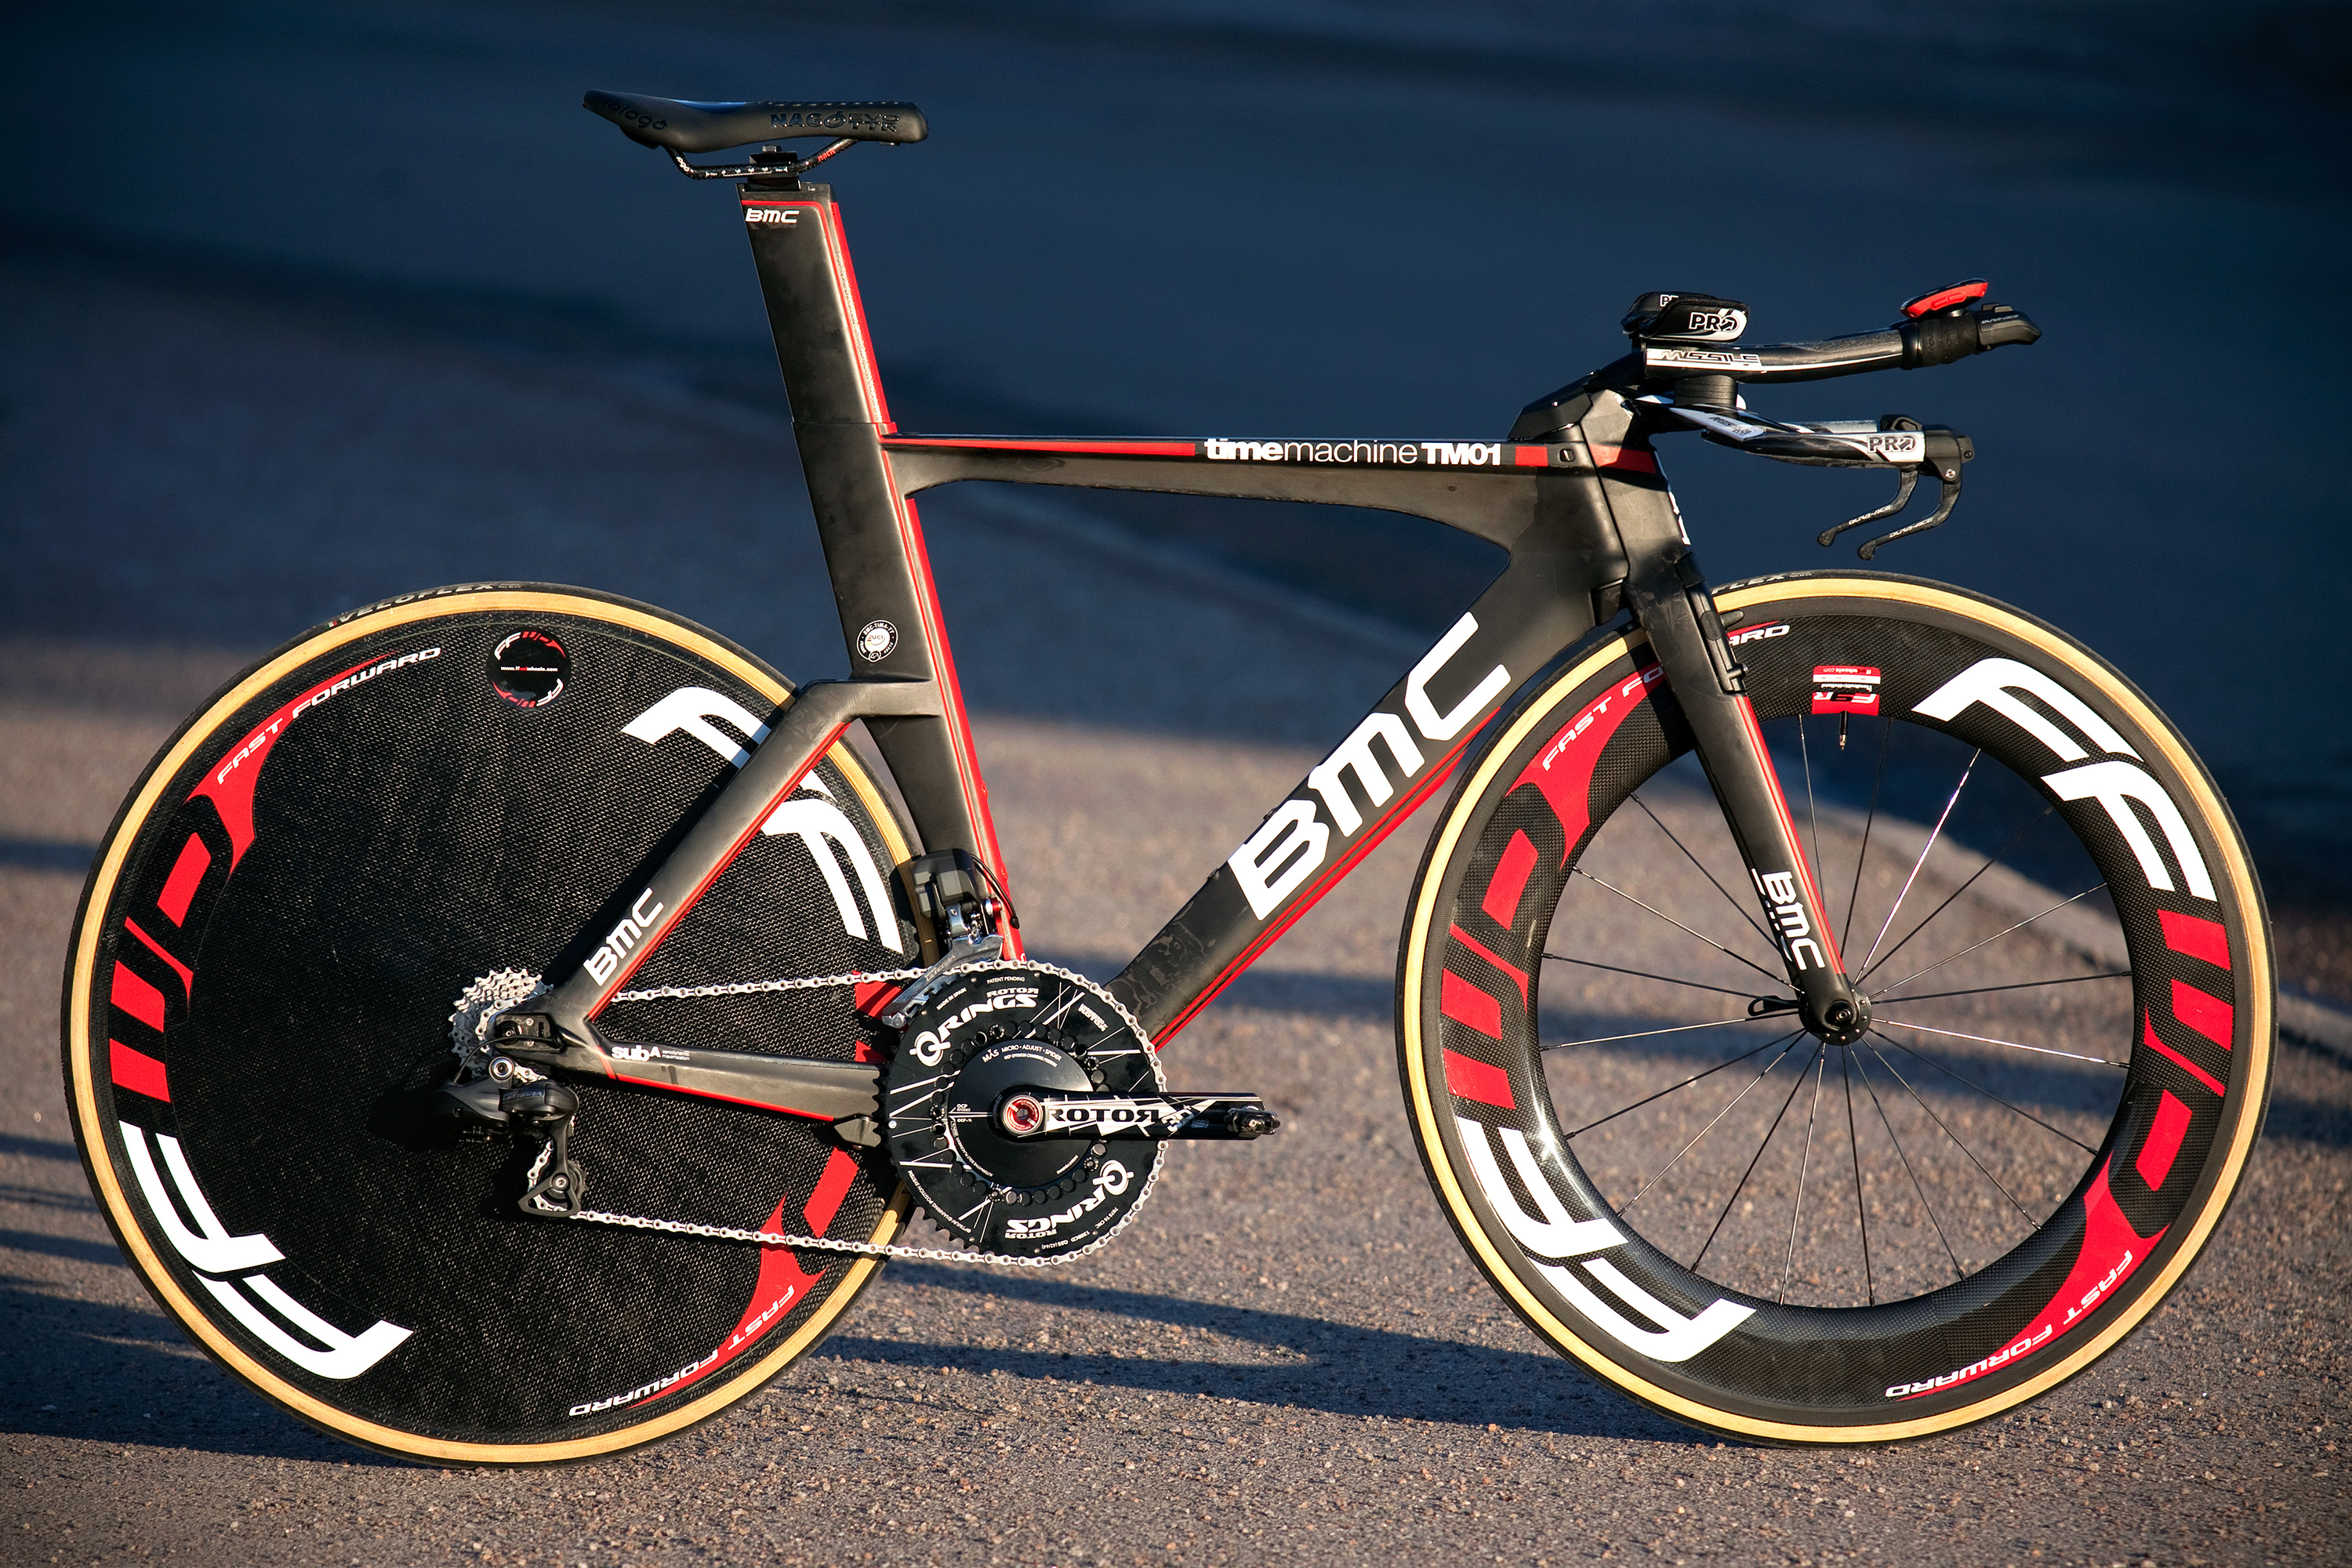 Bmc tm photo - 3